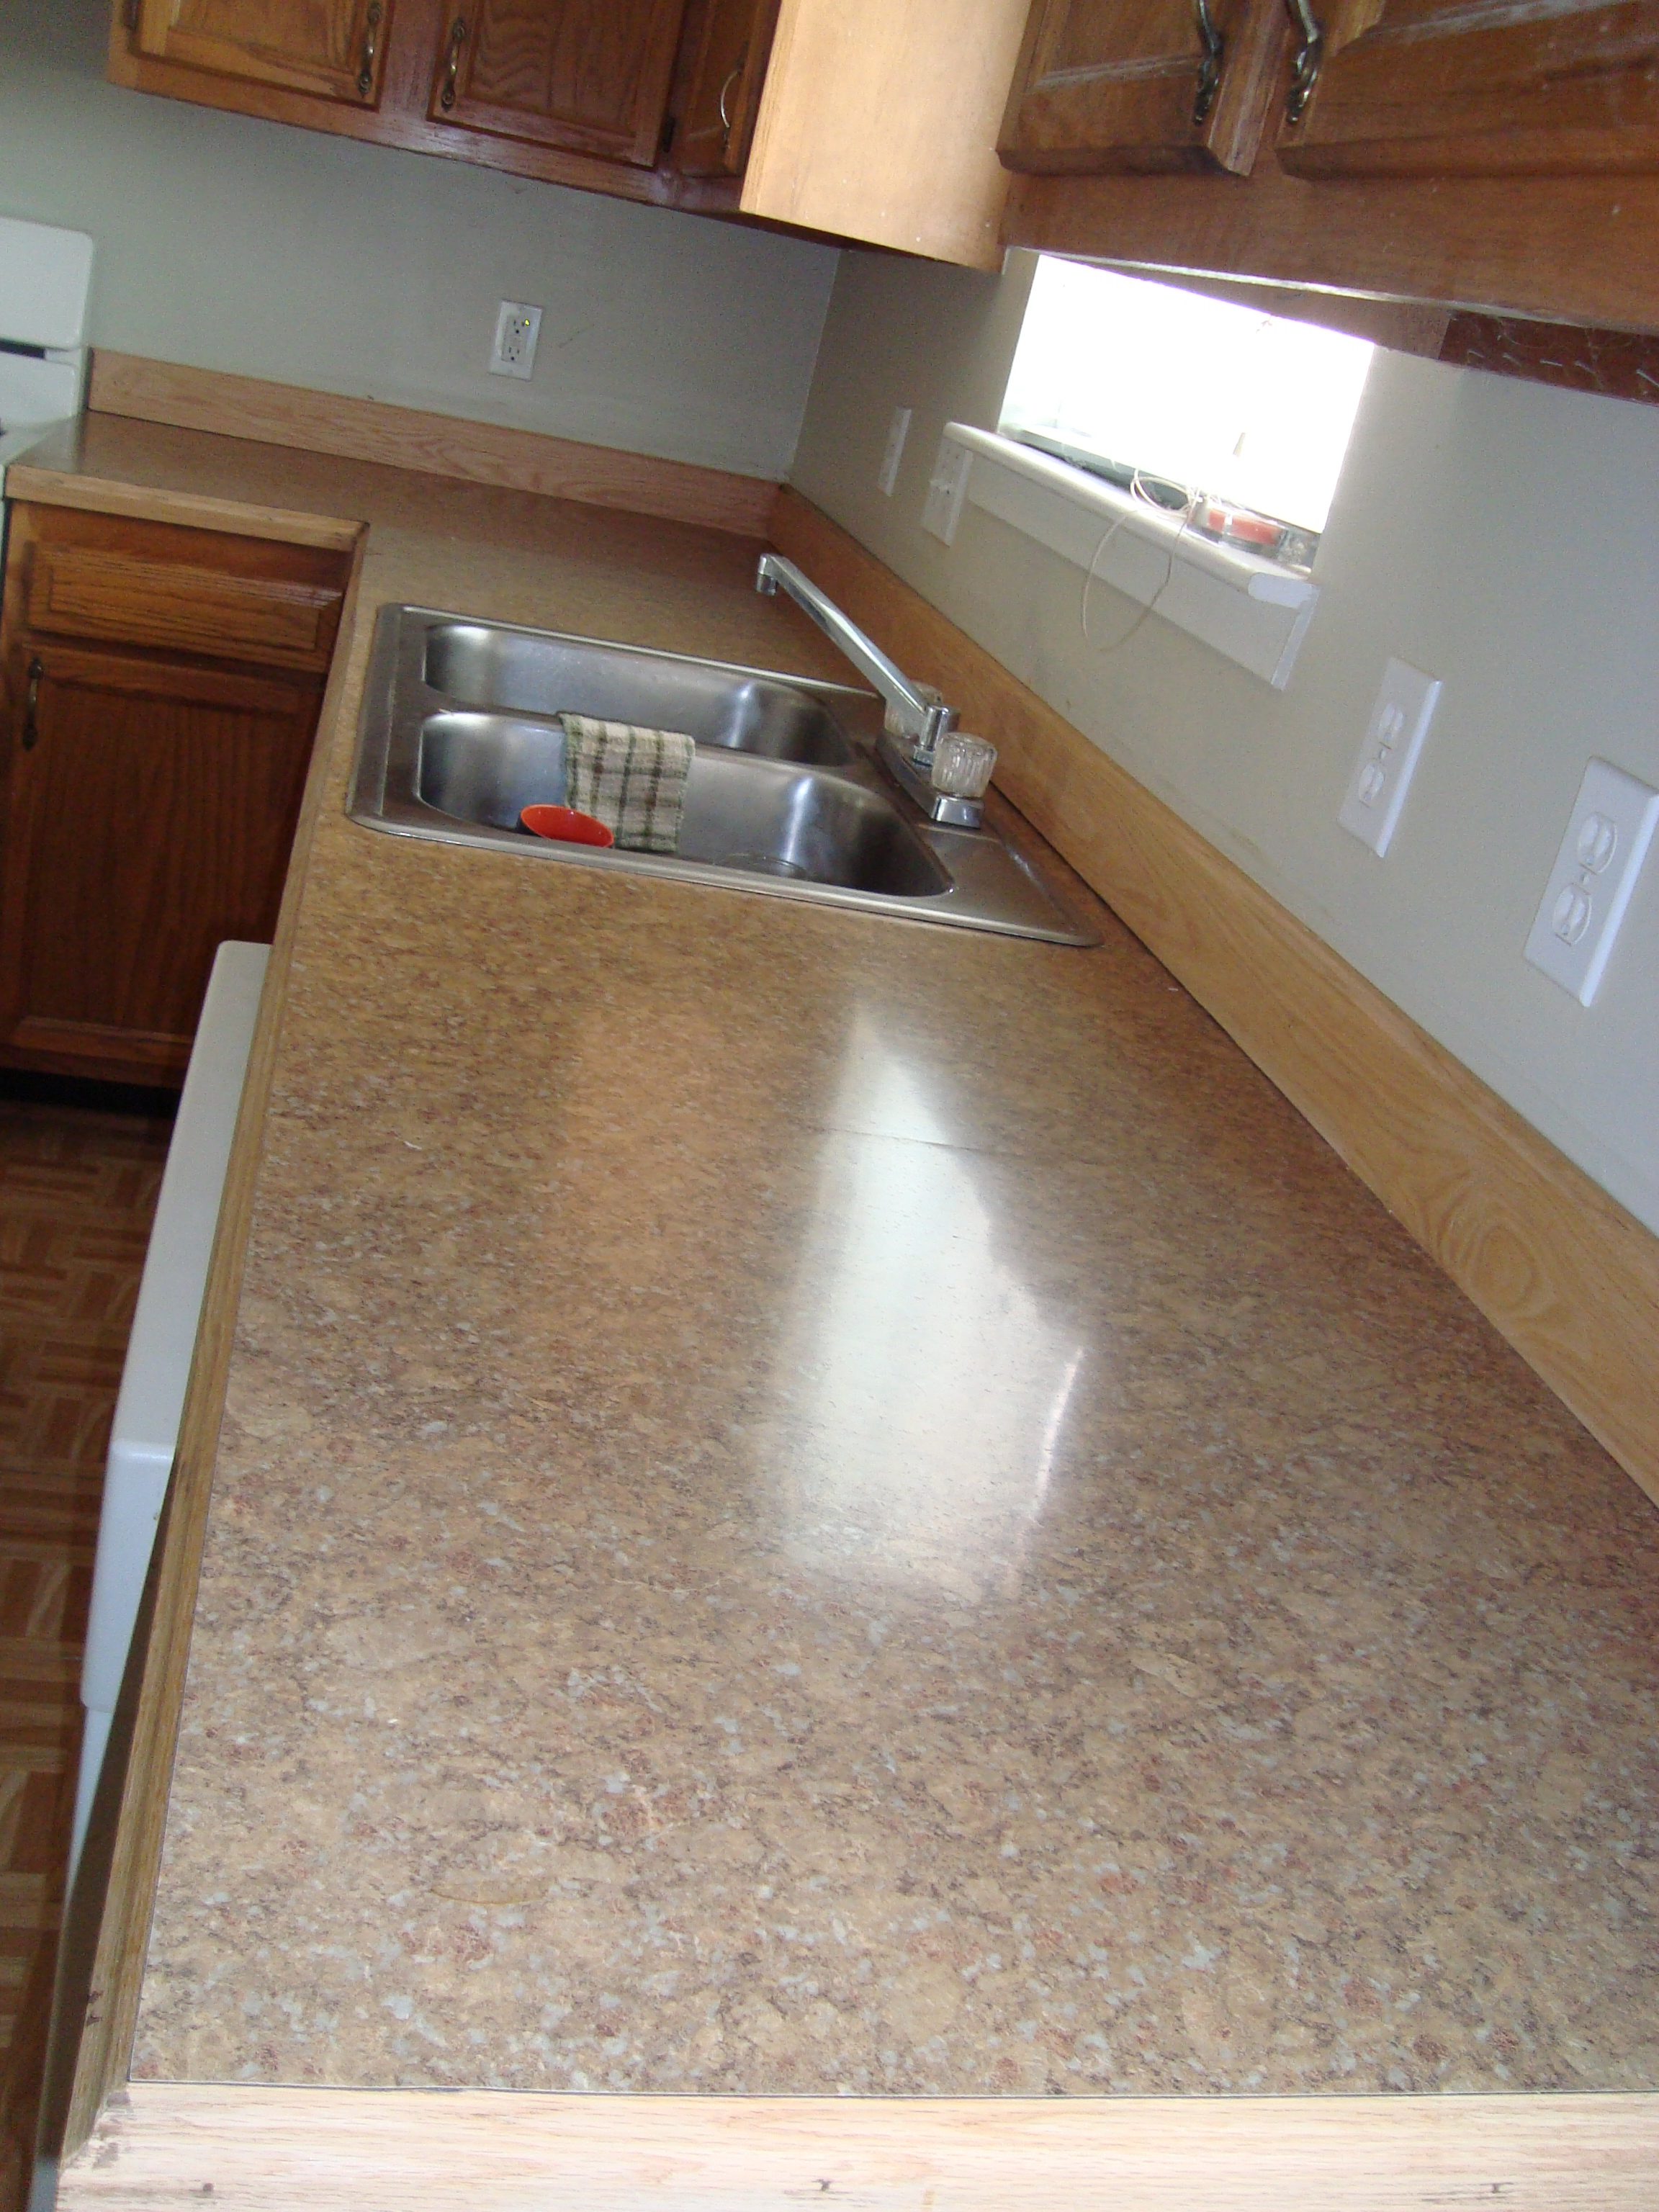 Change your countertop and upgrade on the cheap!